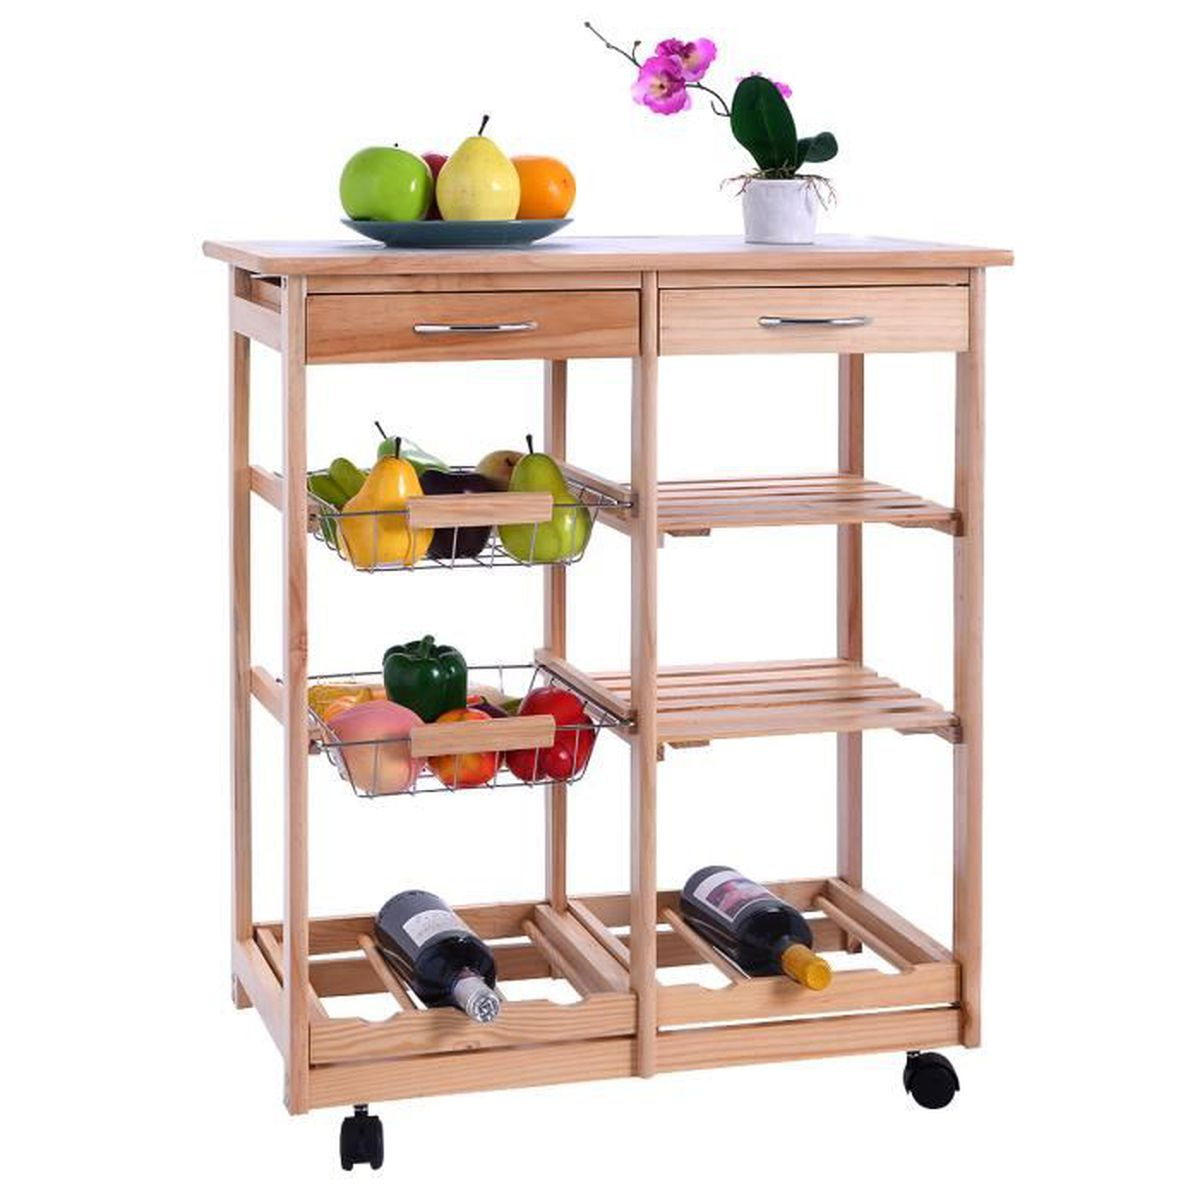 Table etagere cuisine table etagere cuisine with table for Etagere de cuisine en palette